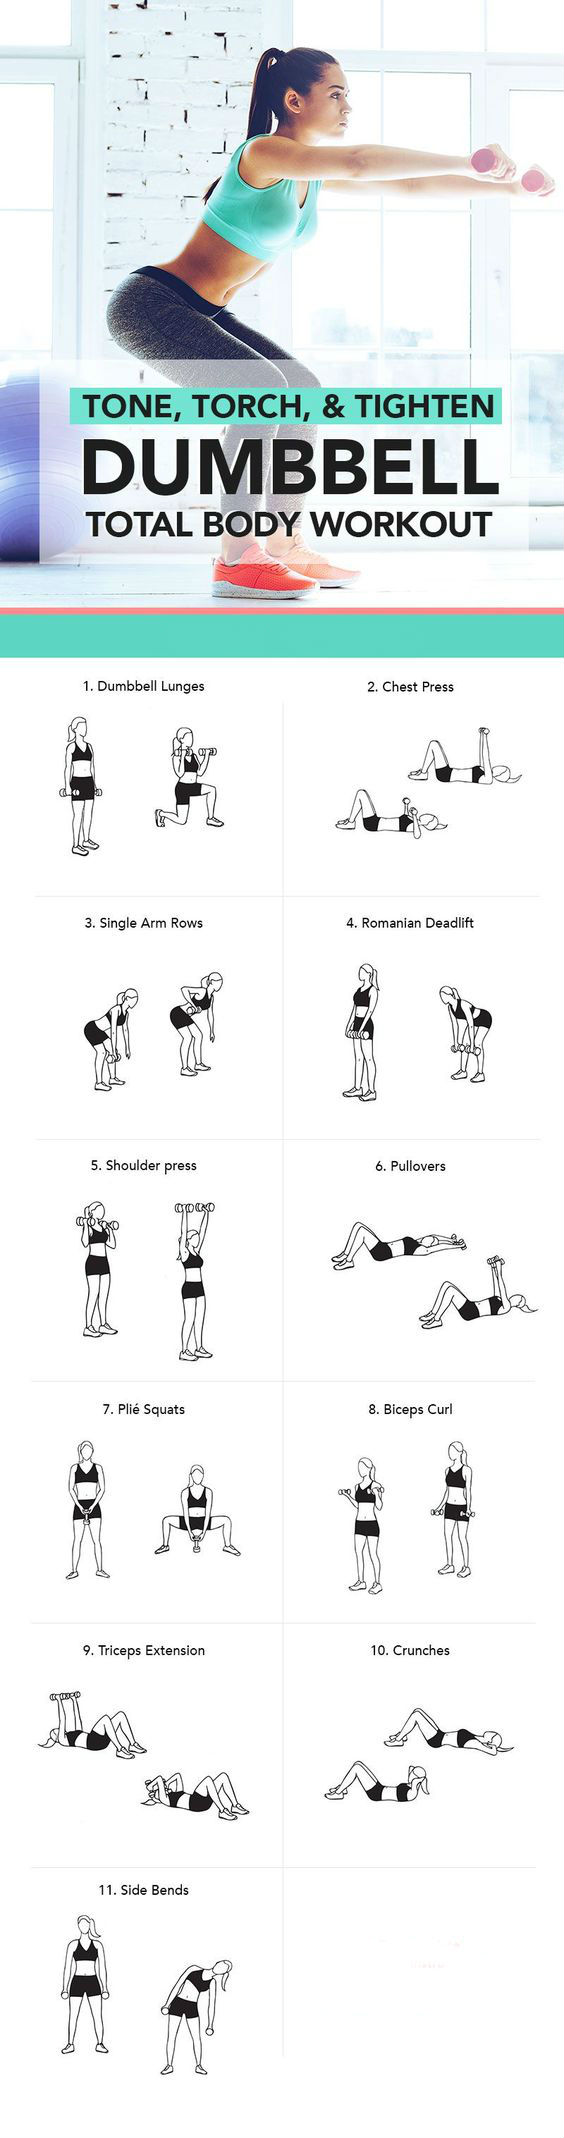 Dumbbell-total-body-workout